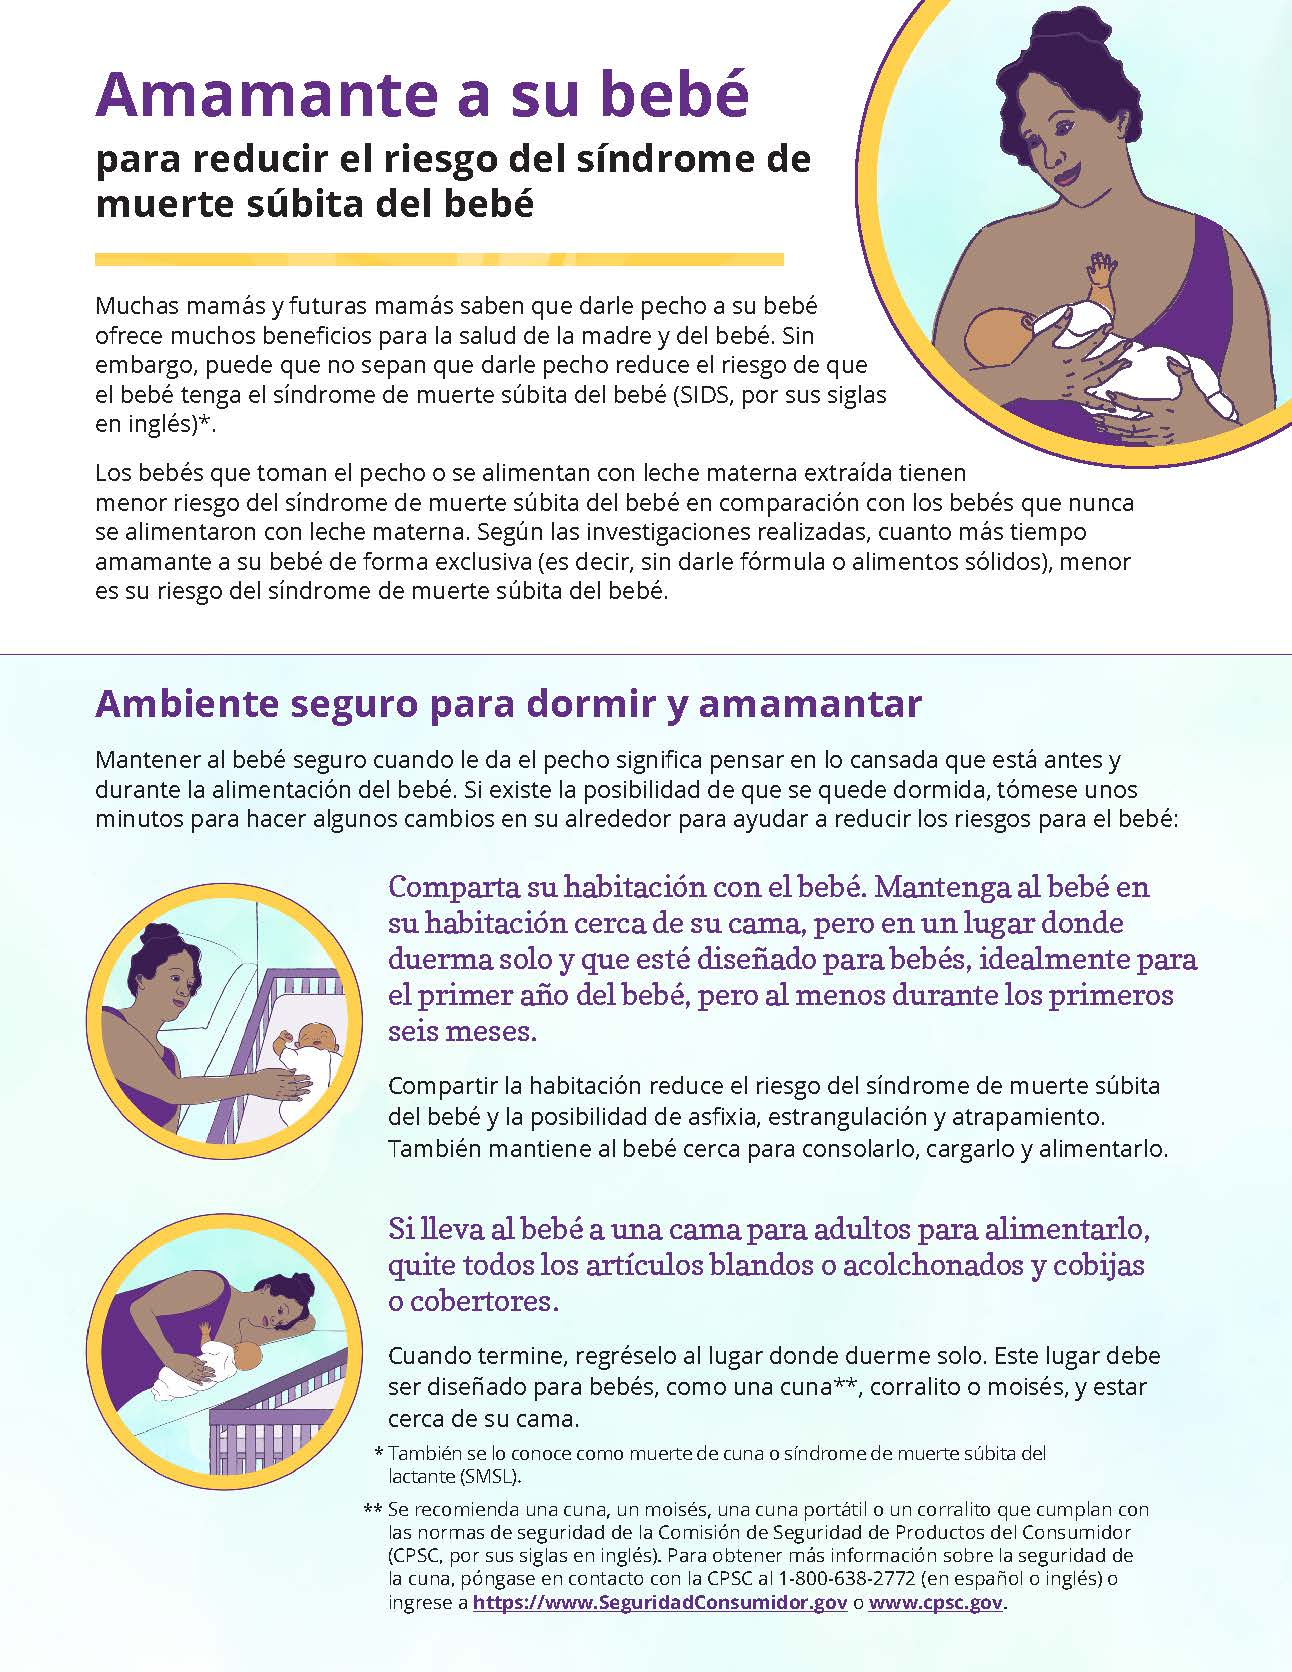 Front side of Spanish handout on breastfeeding and SIDS